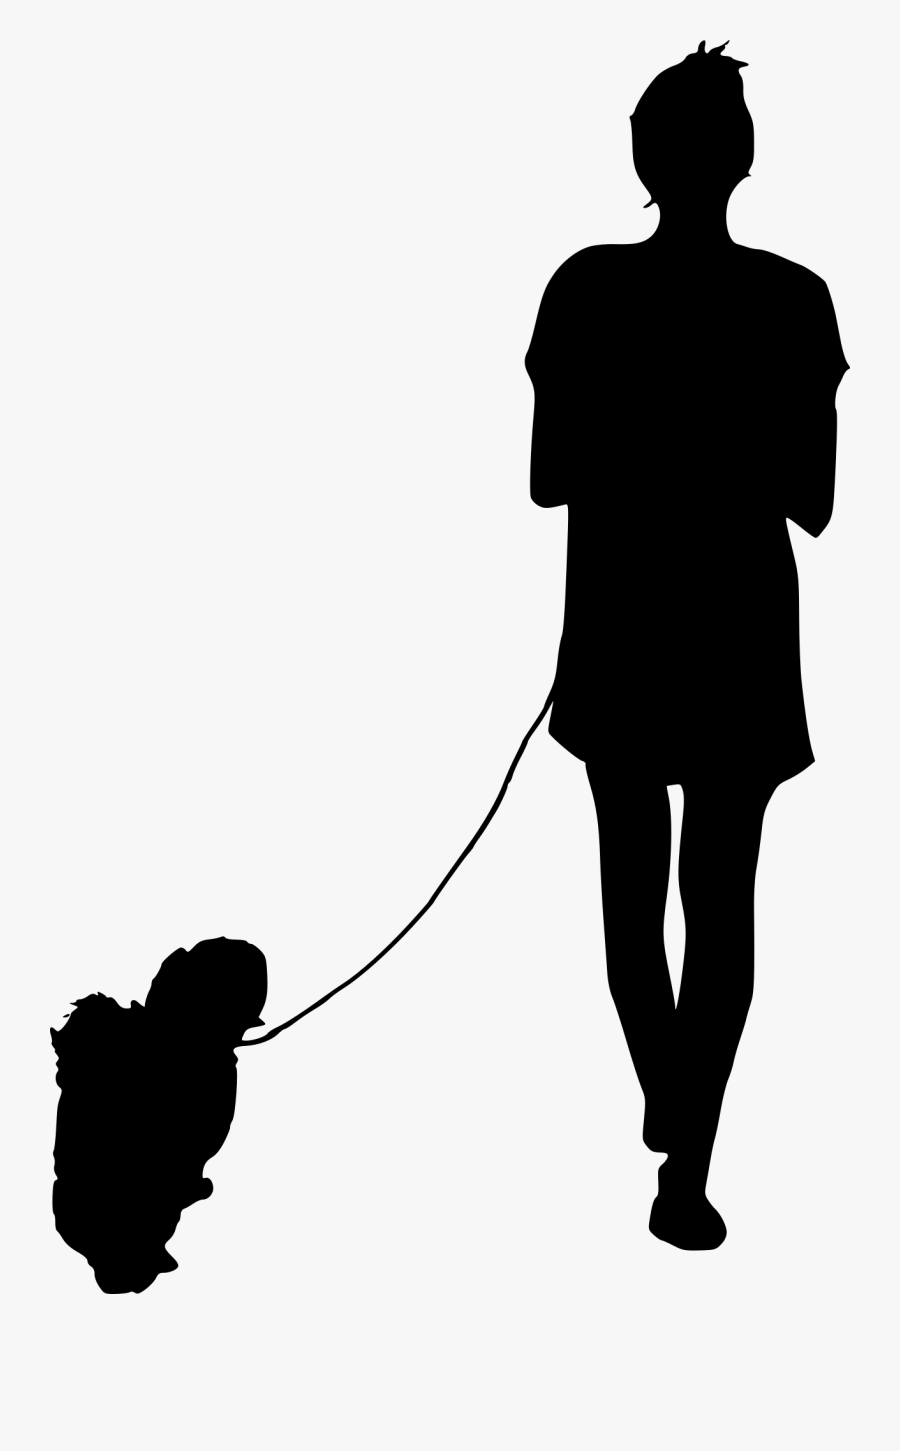 Clip Art People Walking Silhouette - Person Walking Silhouette Png, Transparent Clipart